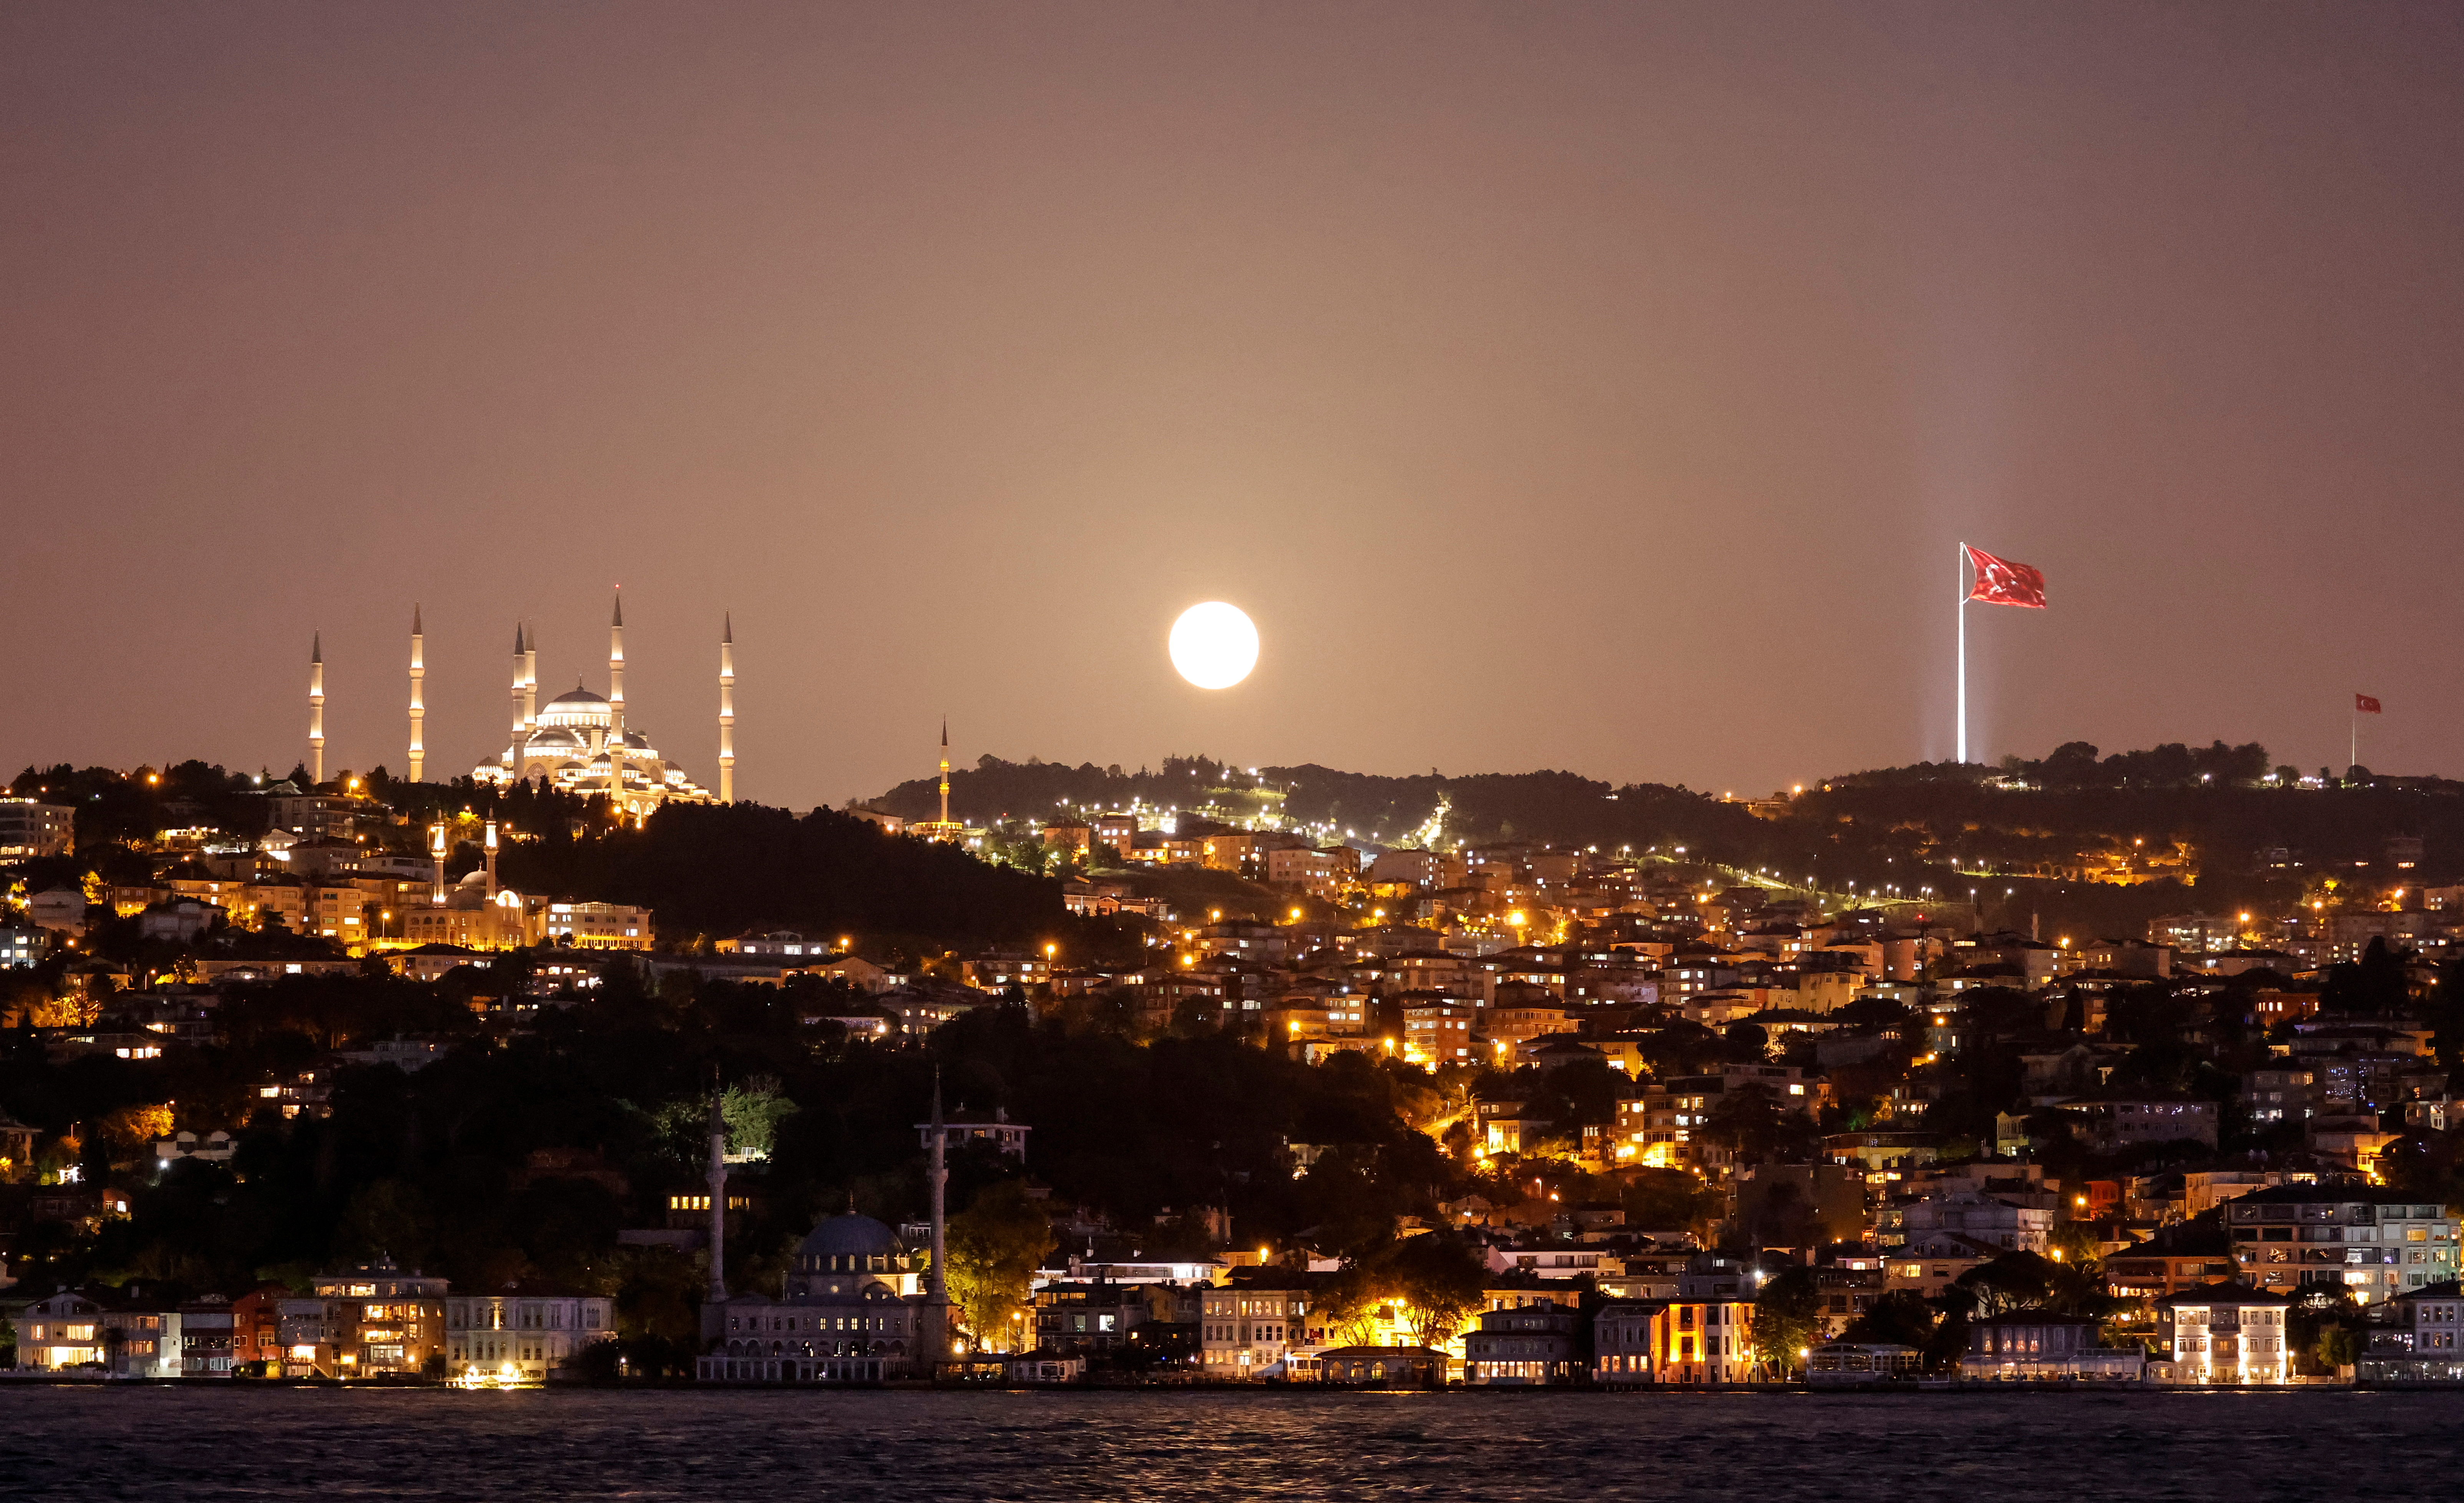 """The full moon, known as the """"Super Flower Moon"""", rises above the Camlica Mosque in Istanbul, Turkey May 26, 2021. REUTERS/Umit Bektas"""